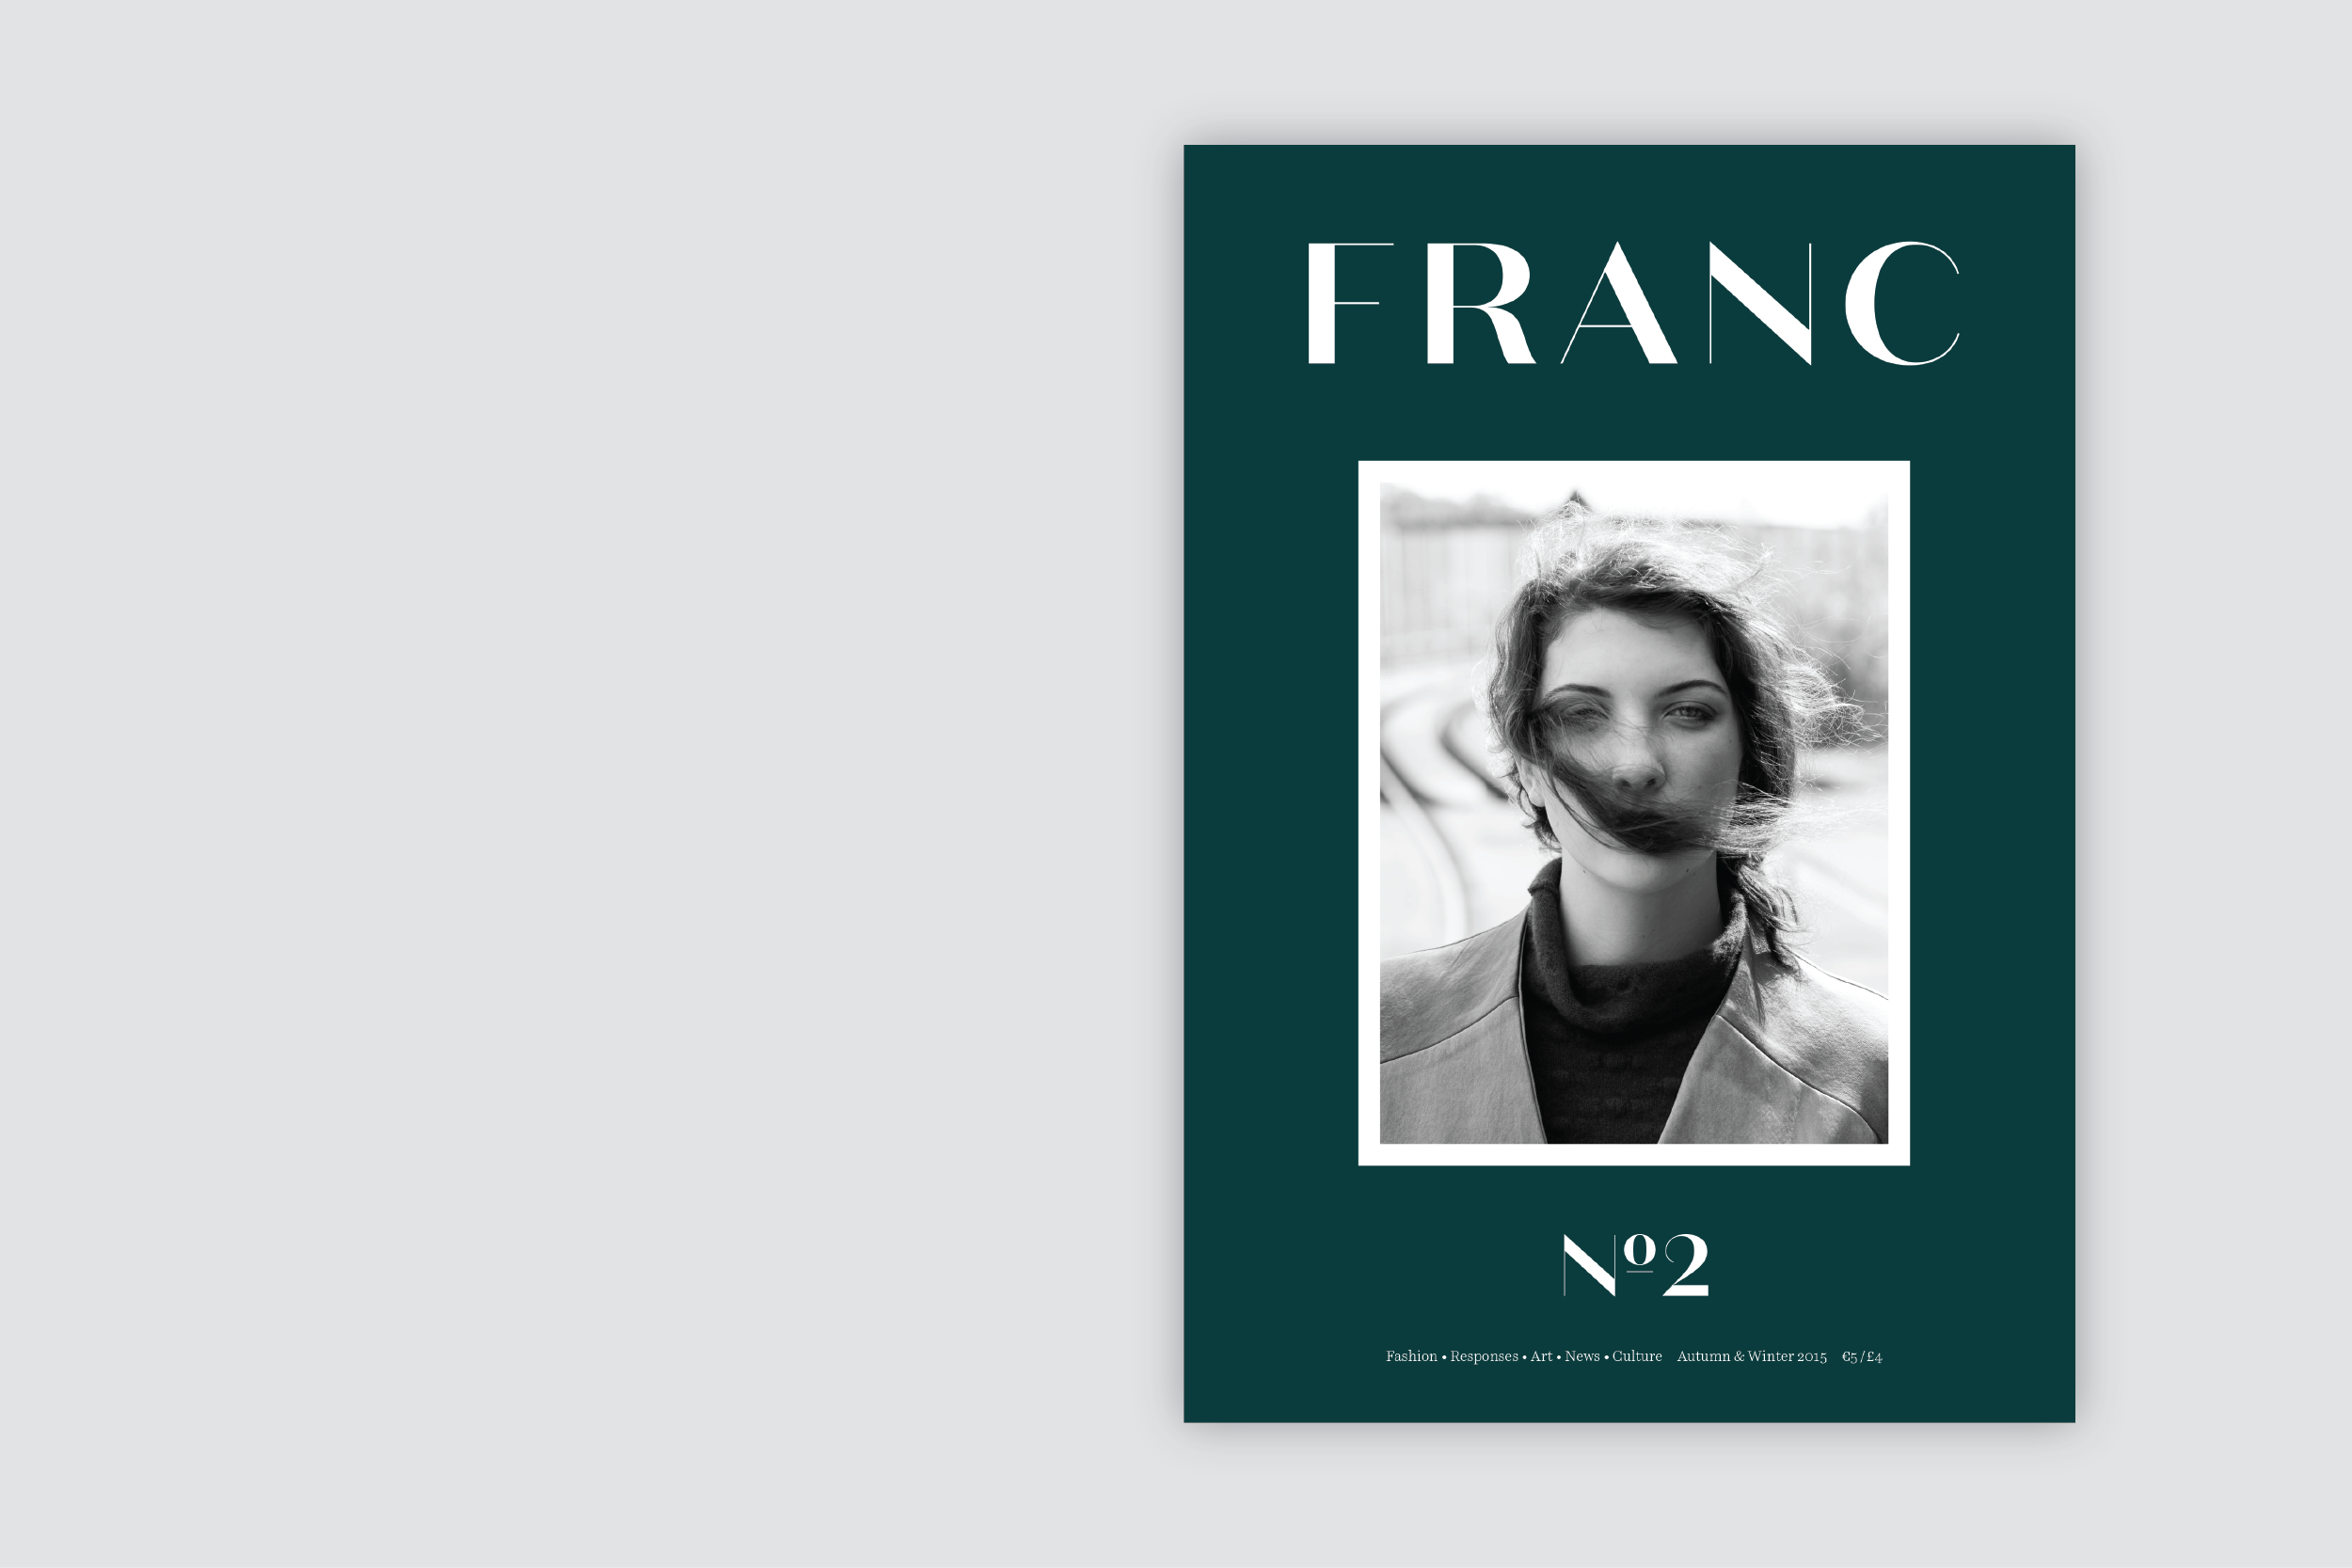 Cover image: FRANC №2